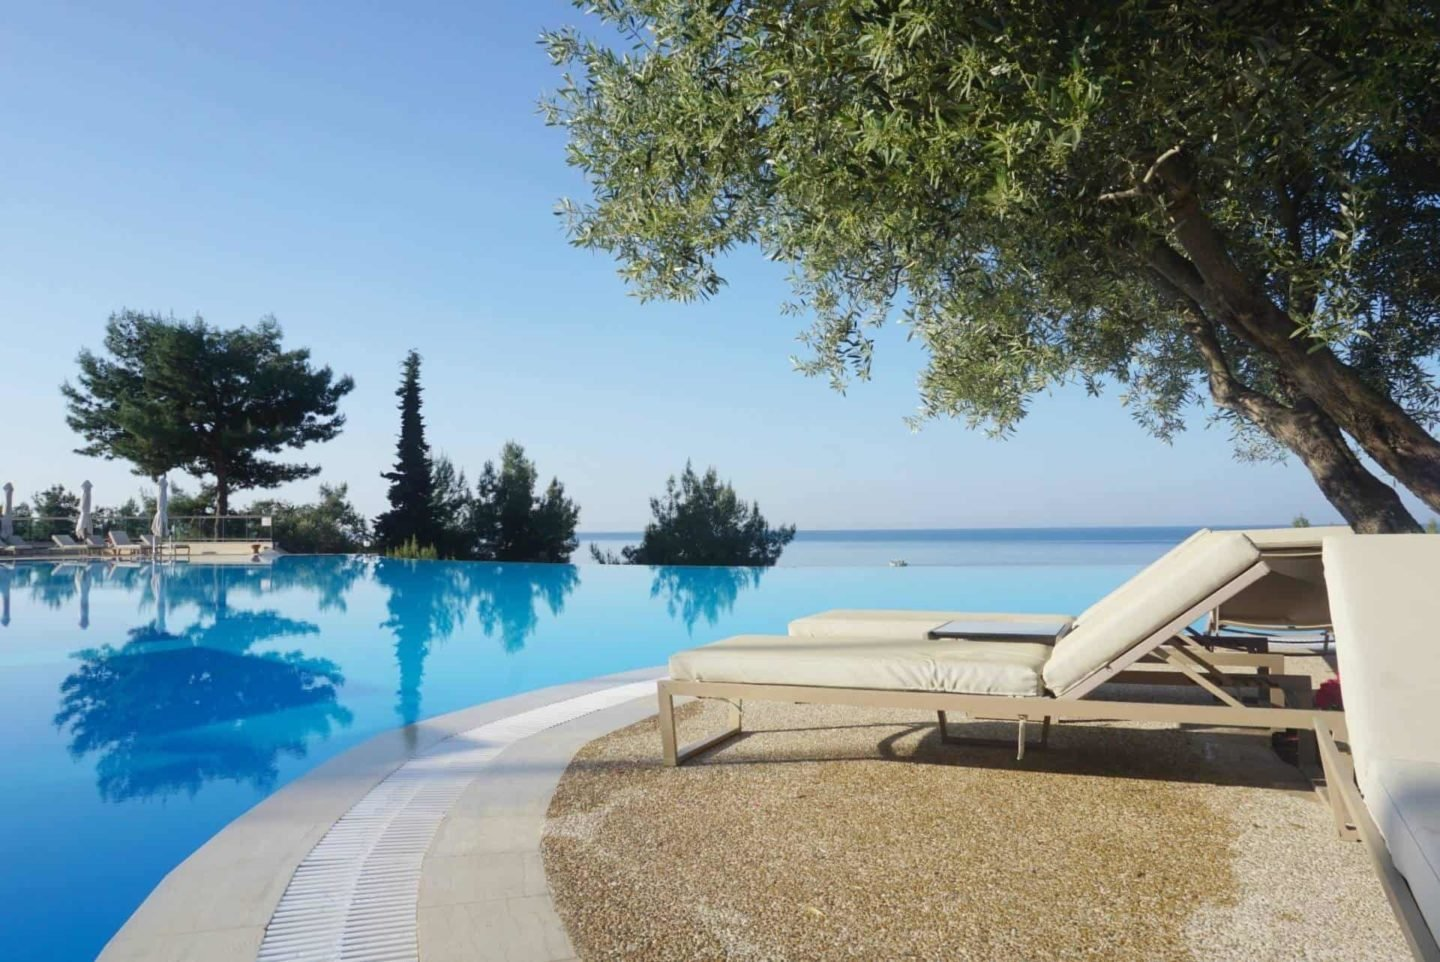 10 Reasons You will Fall In Love With Ikos Oceania Greece